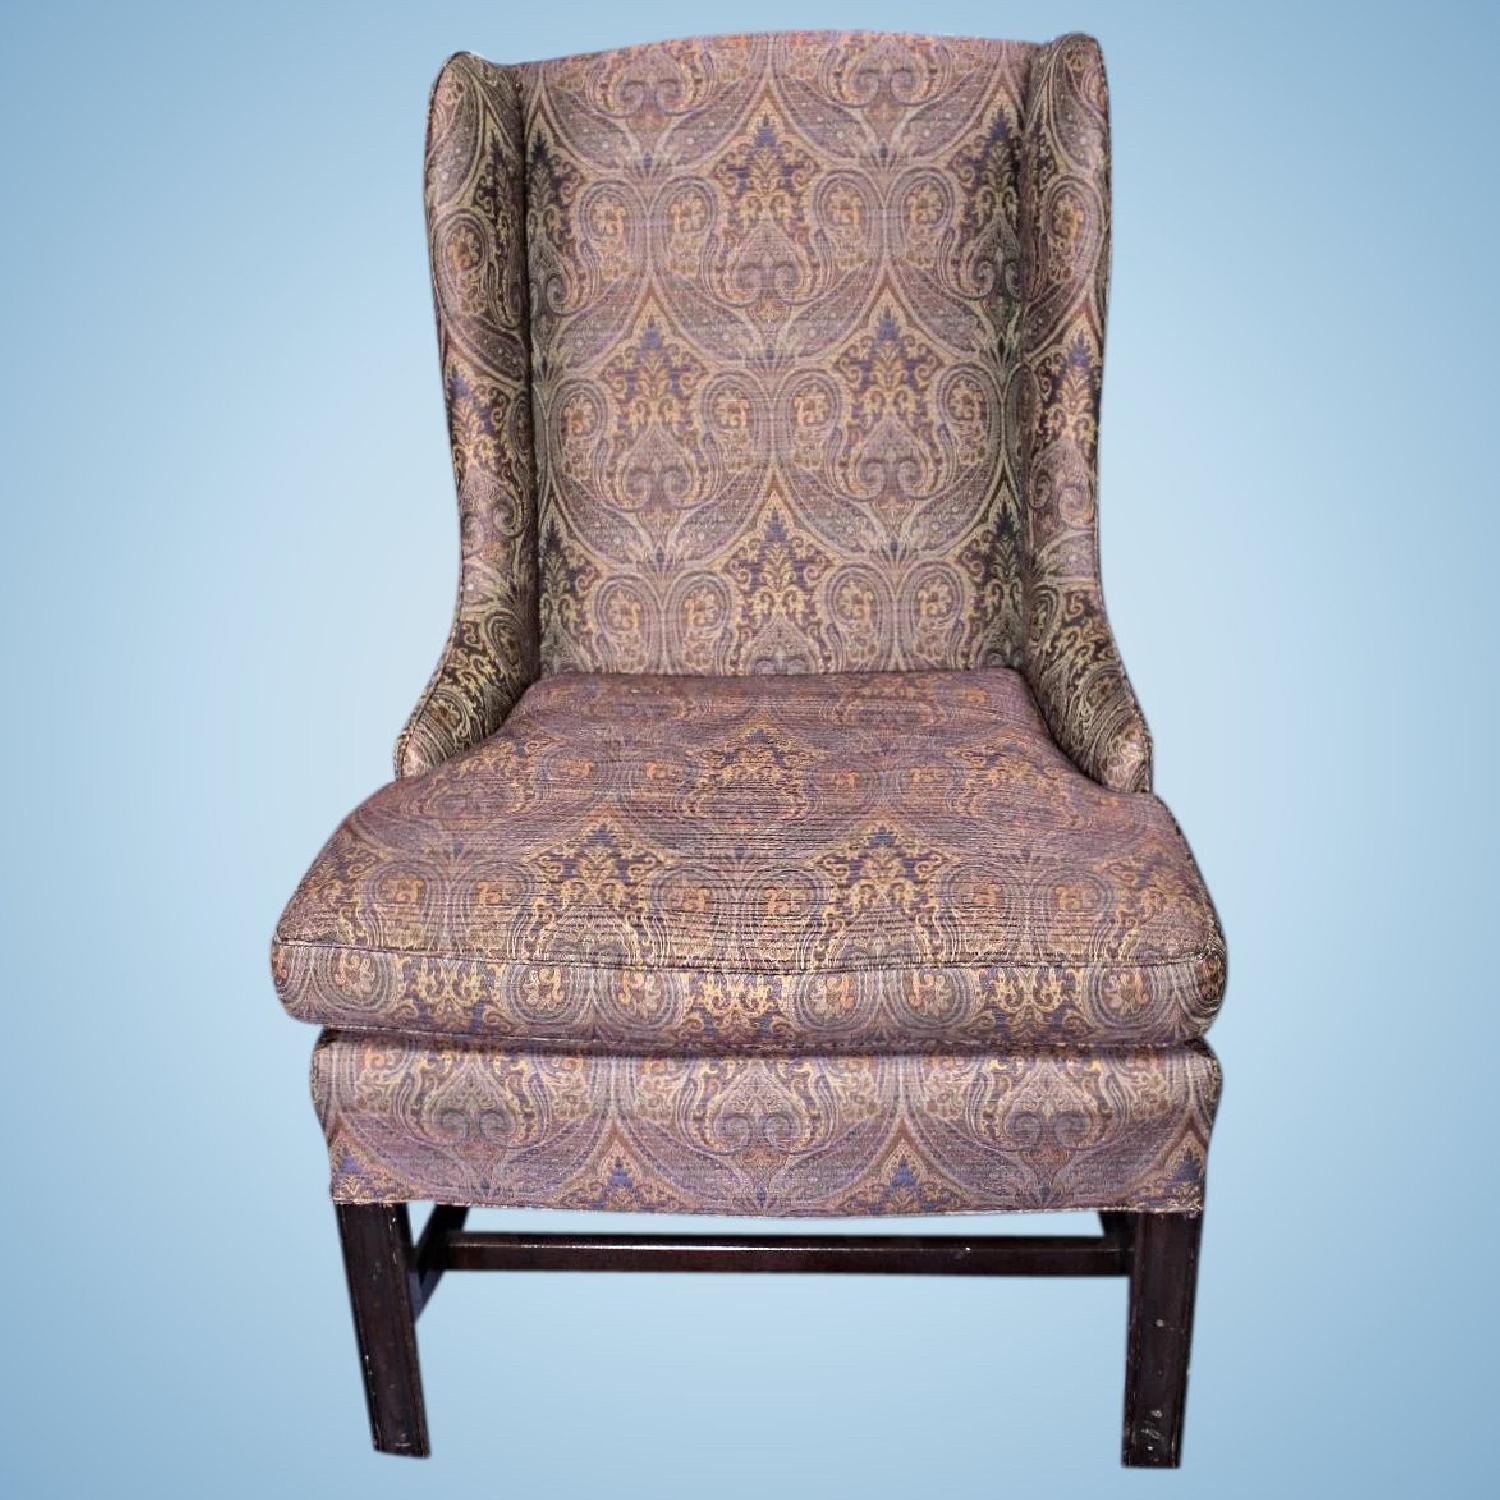 Paisley Chair Vintage Purple Paisley Child Wing Chair Armchair